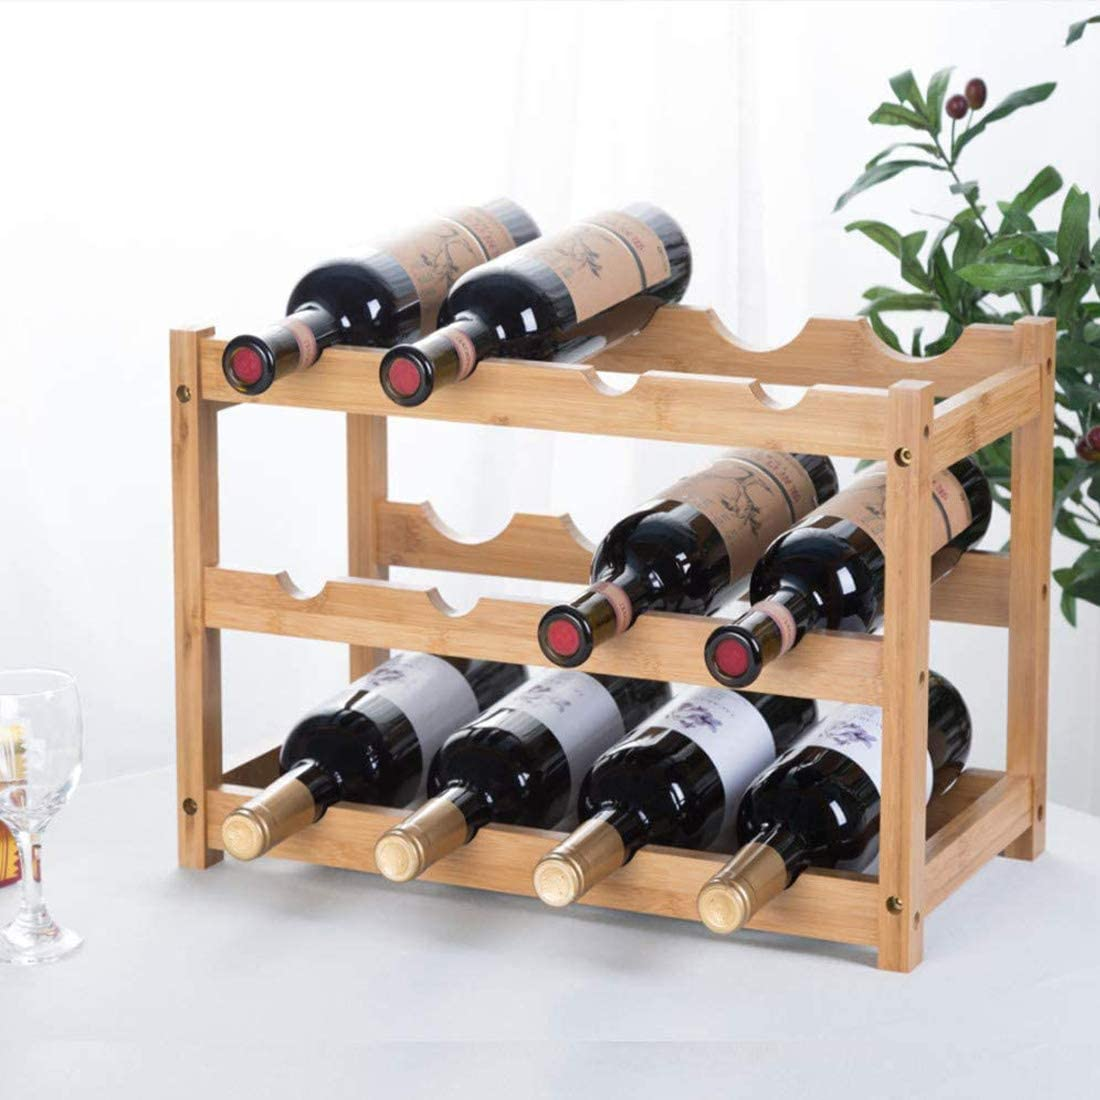 Amazon Com Riipoo Wine Racks Countertop Wine Bottle Holder Wine Shelf Storage For Kitchen Dinging Room Pantry Cabinet Bar 3 Tier Kitchen Dining